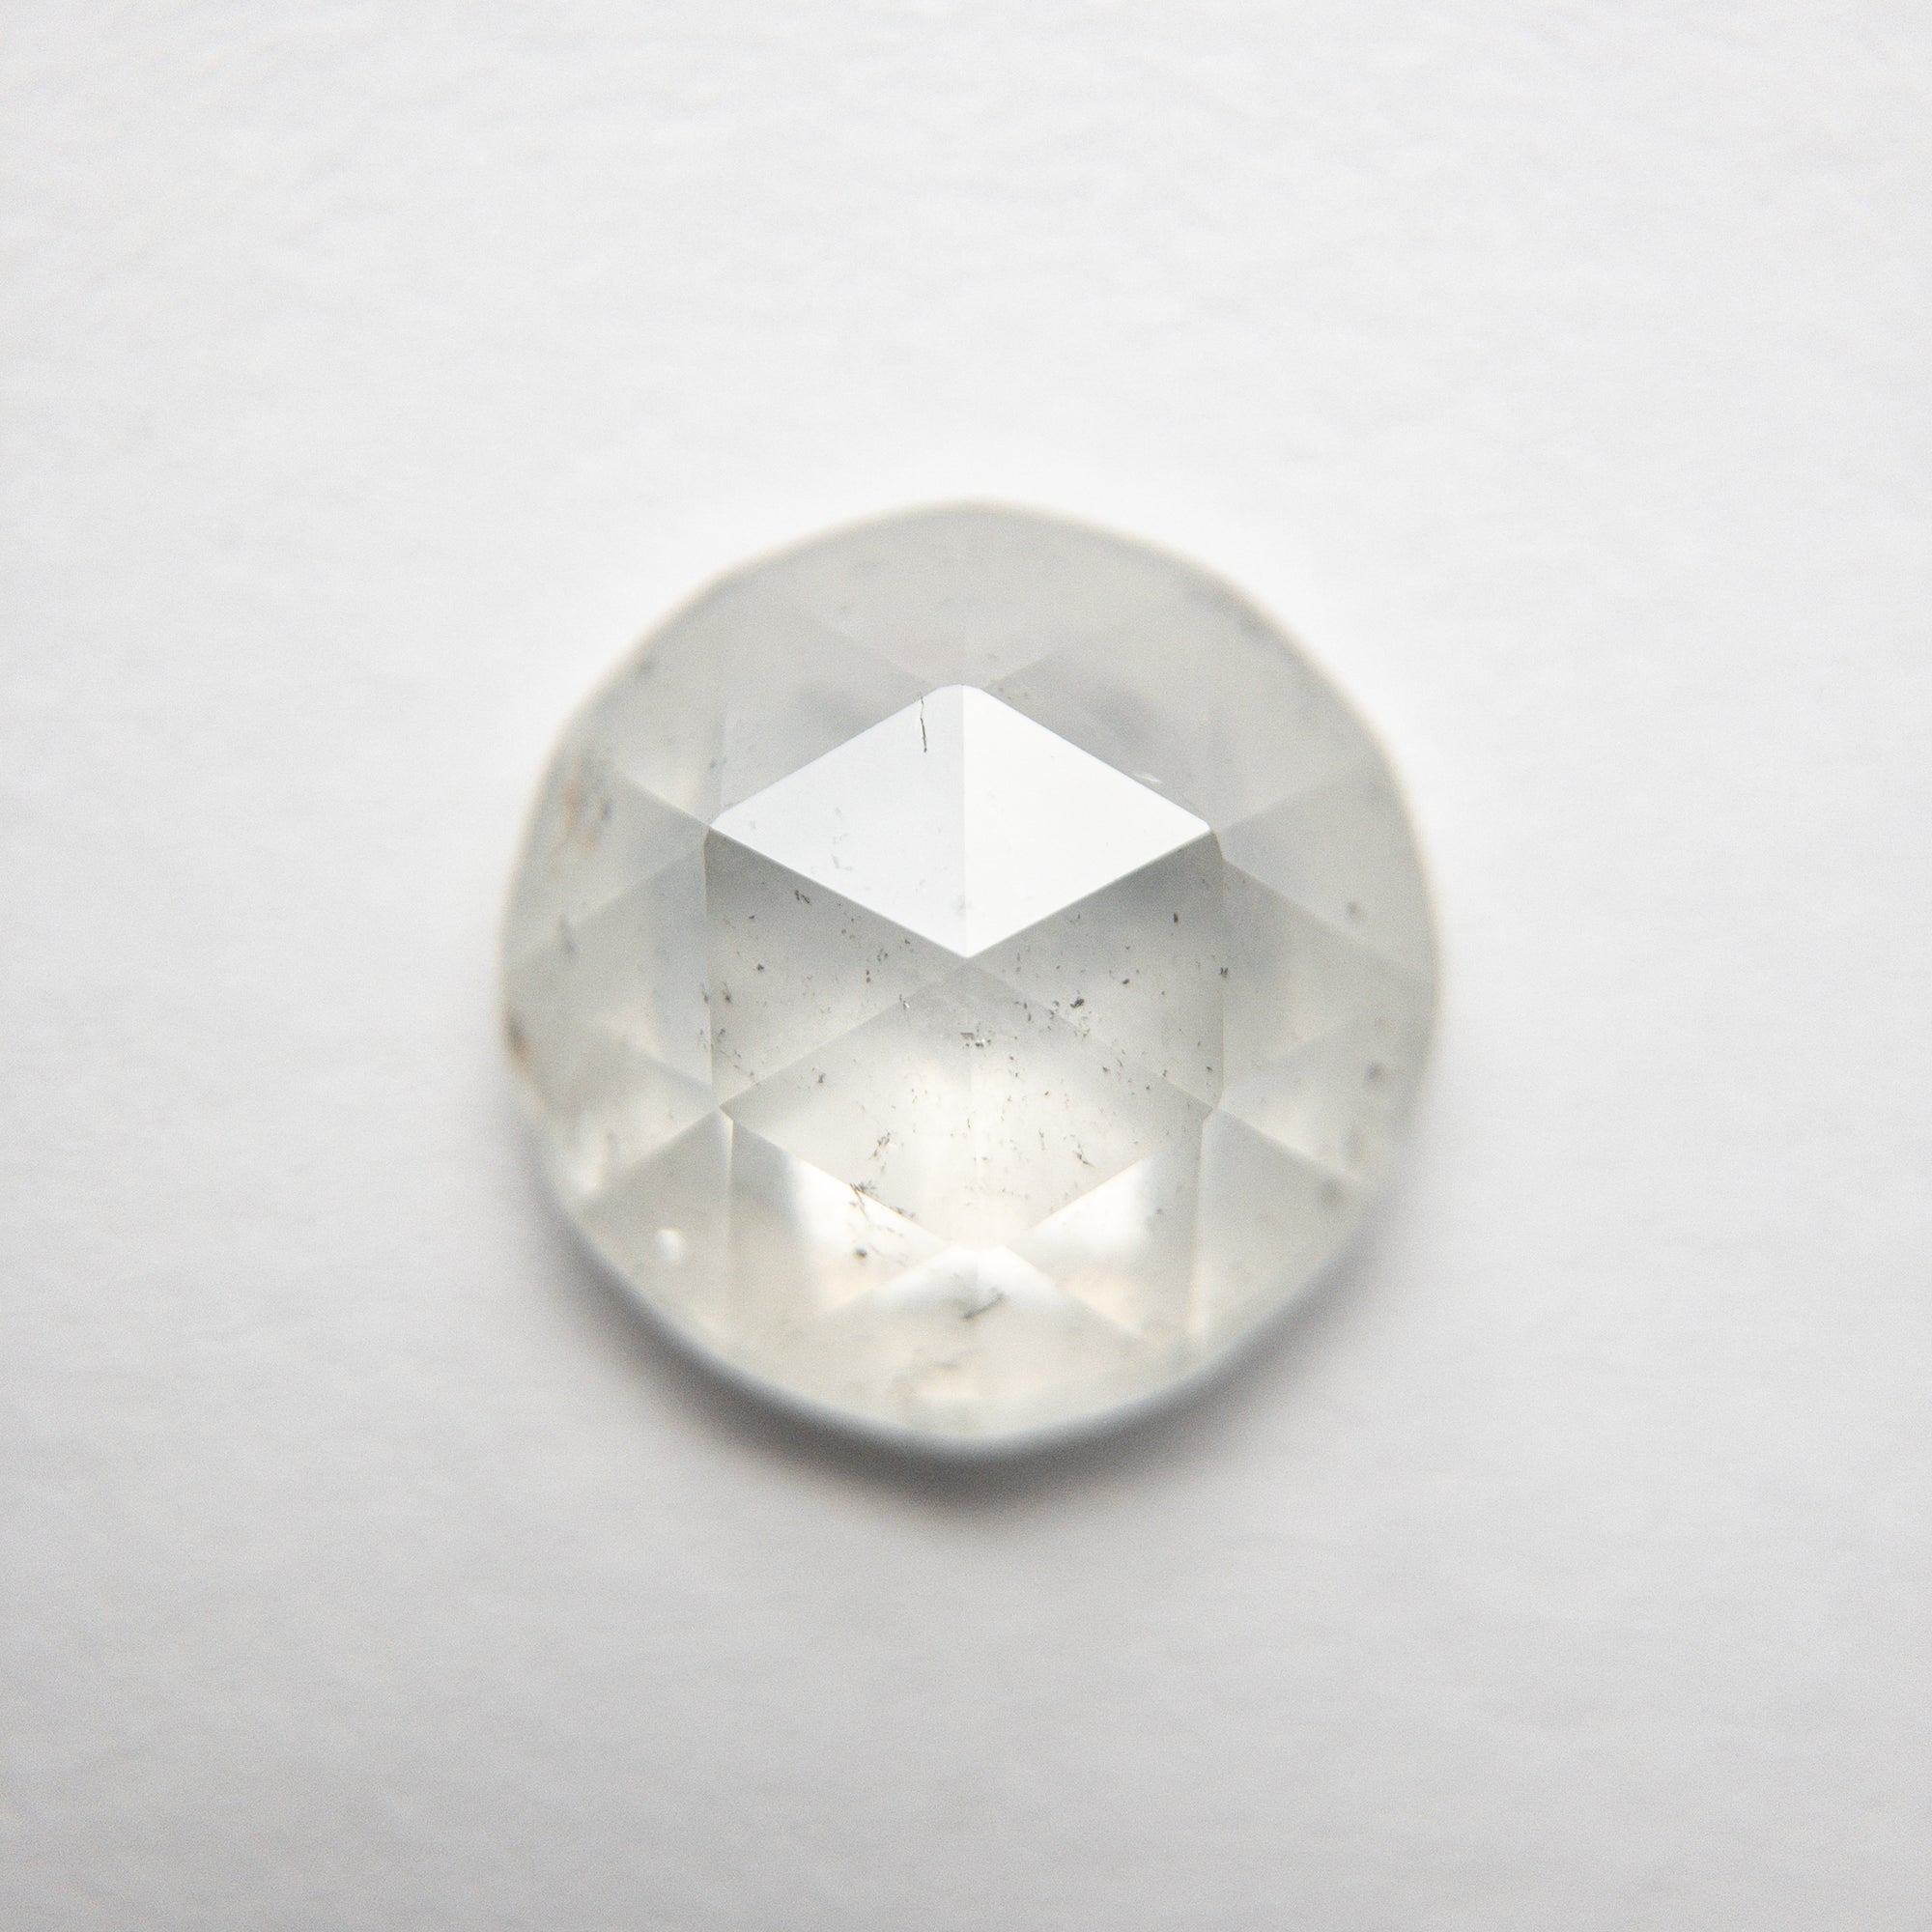 2.24ct 8.75x8.64x3.52mm Round Rosecut 18483-16